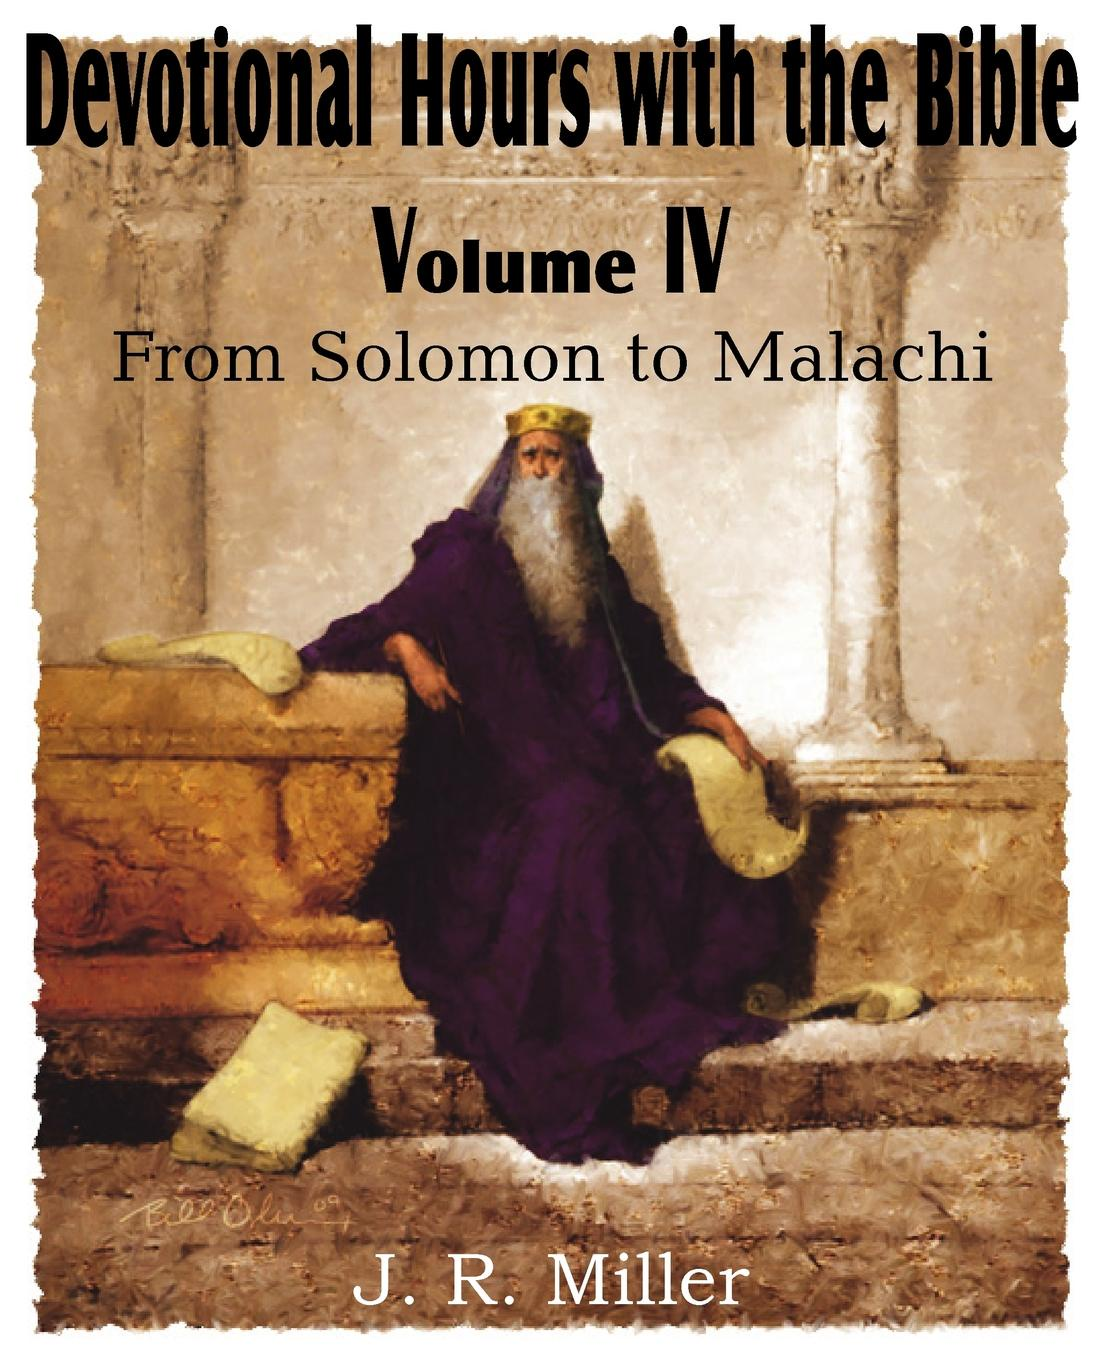 цены на J. R. Miller Devotional Hours with the Bible Volume IV, from Solomon to Malachi  в интернет-магазинах